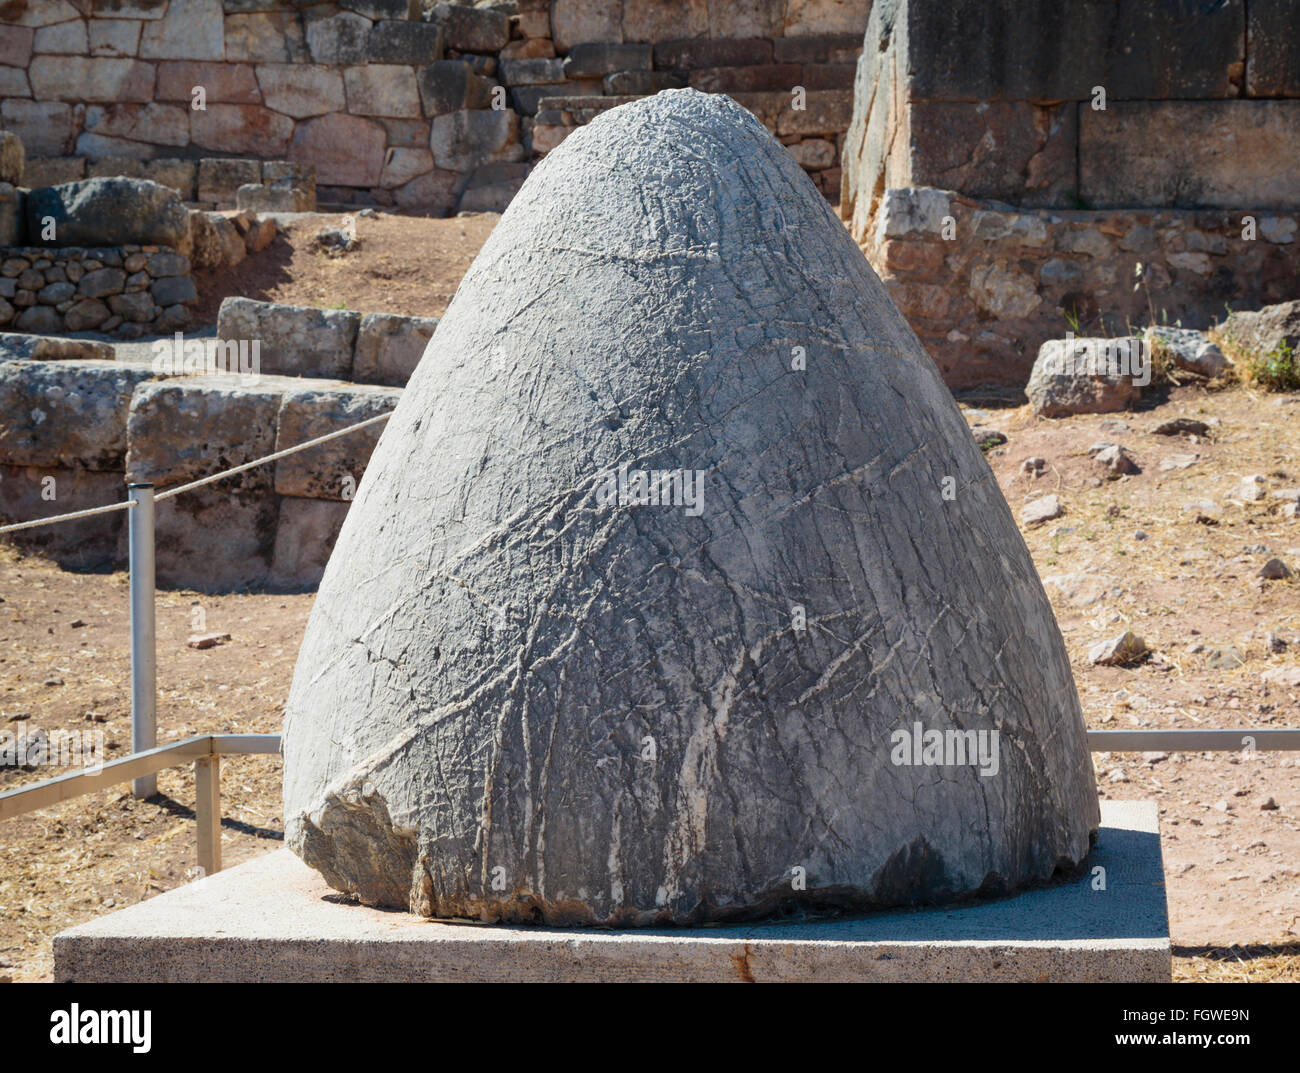 Ancient Delphi, Phocis, Greece.  The omphalos, or navel, of ancient Delphi. Stock Photo